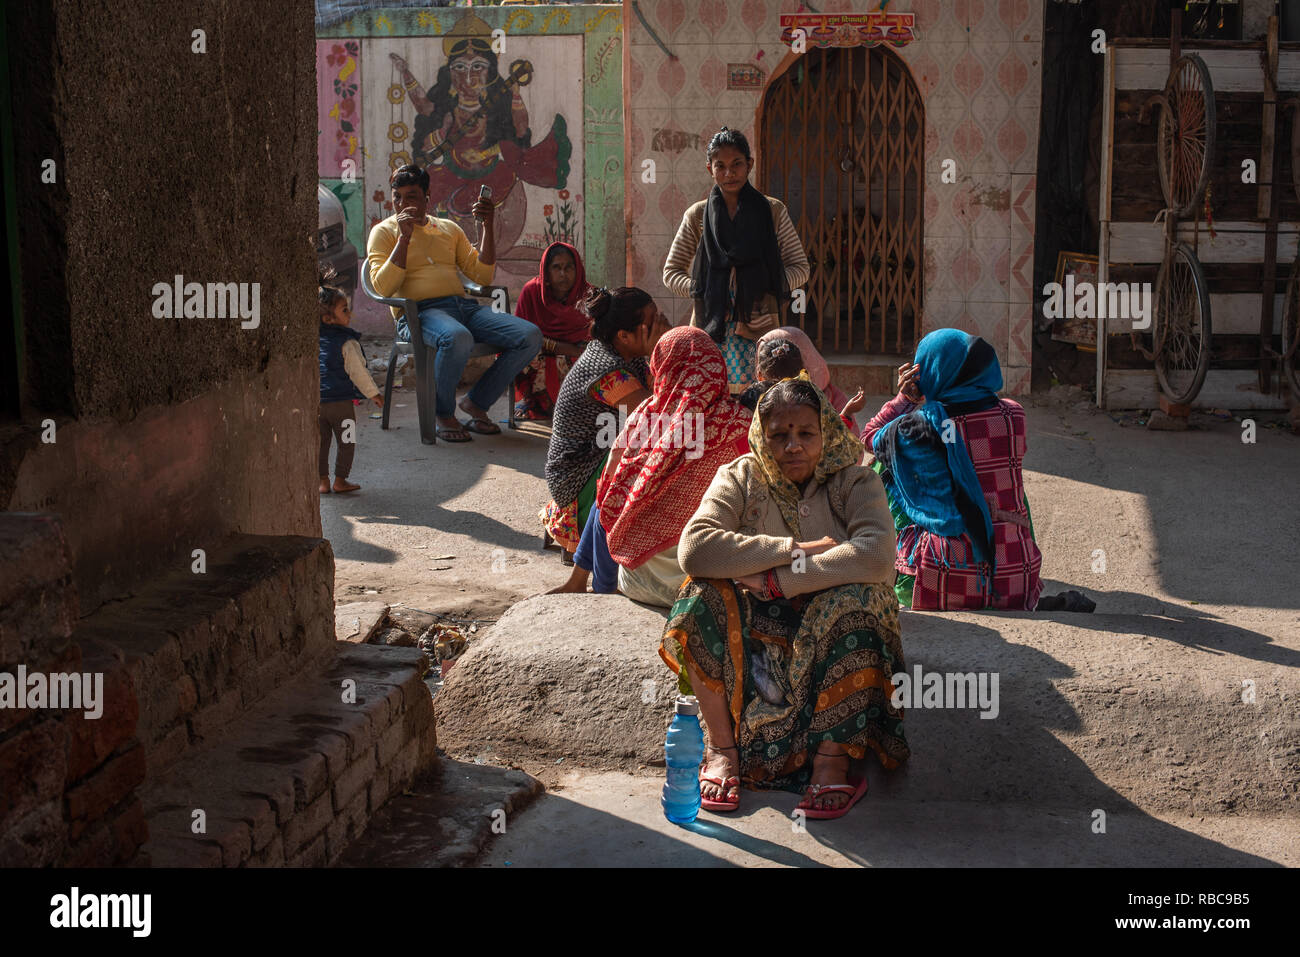 Life on the streets on a wintery sunny afternoon in JJ Colony Madanpur Khadar, New Delhi - women group together sitting in front of a temple. Stock Photo